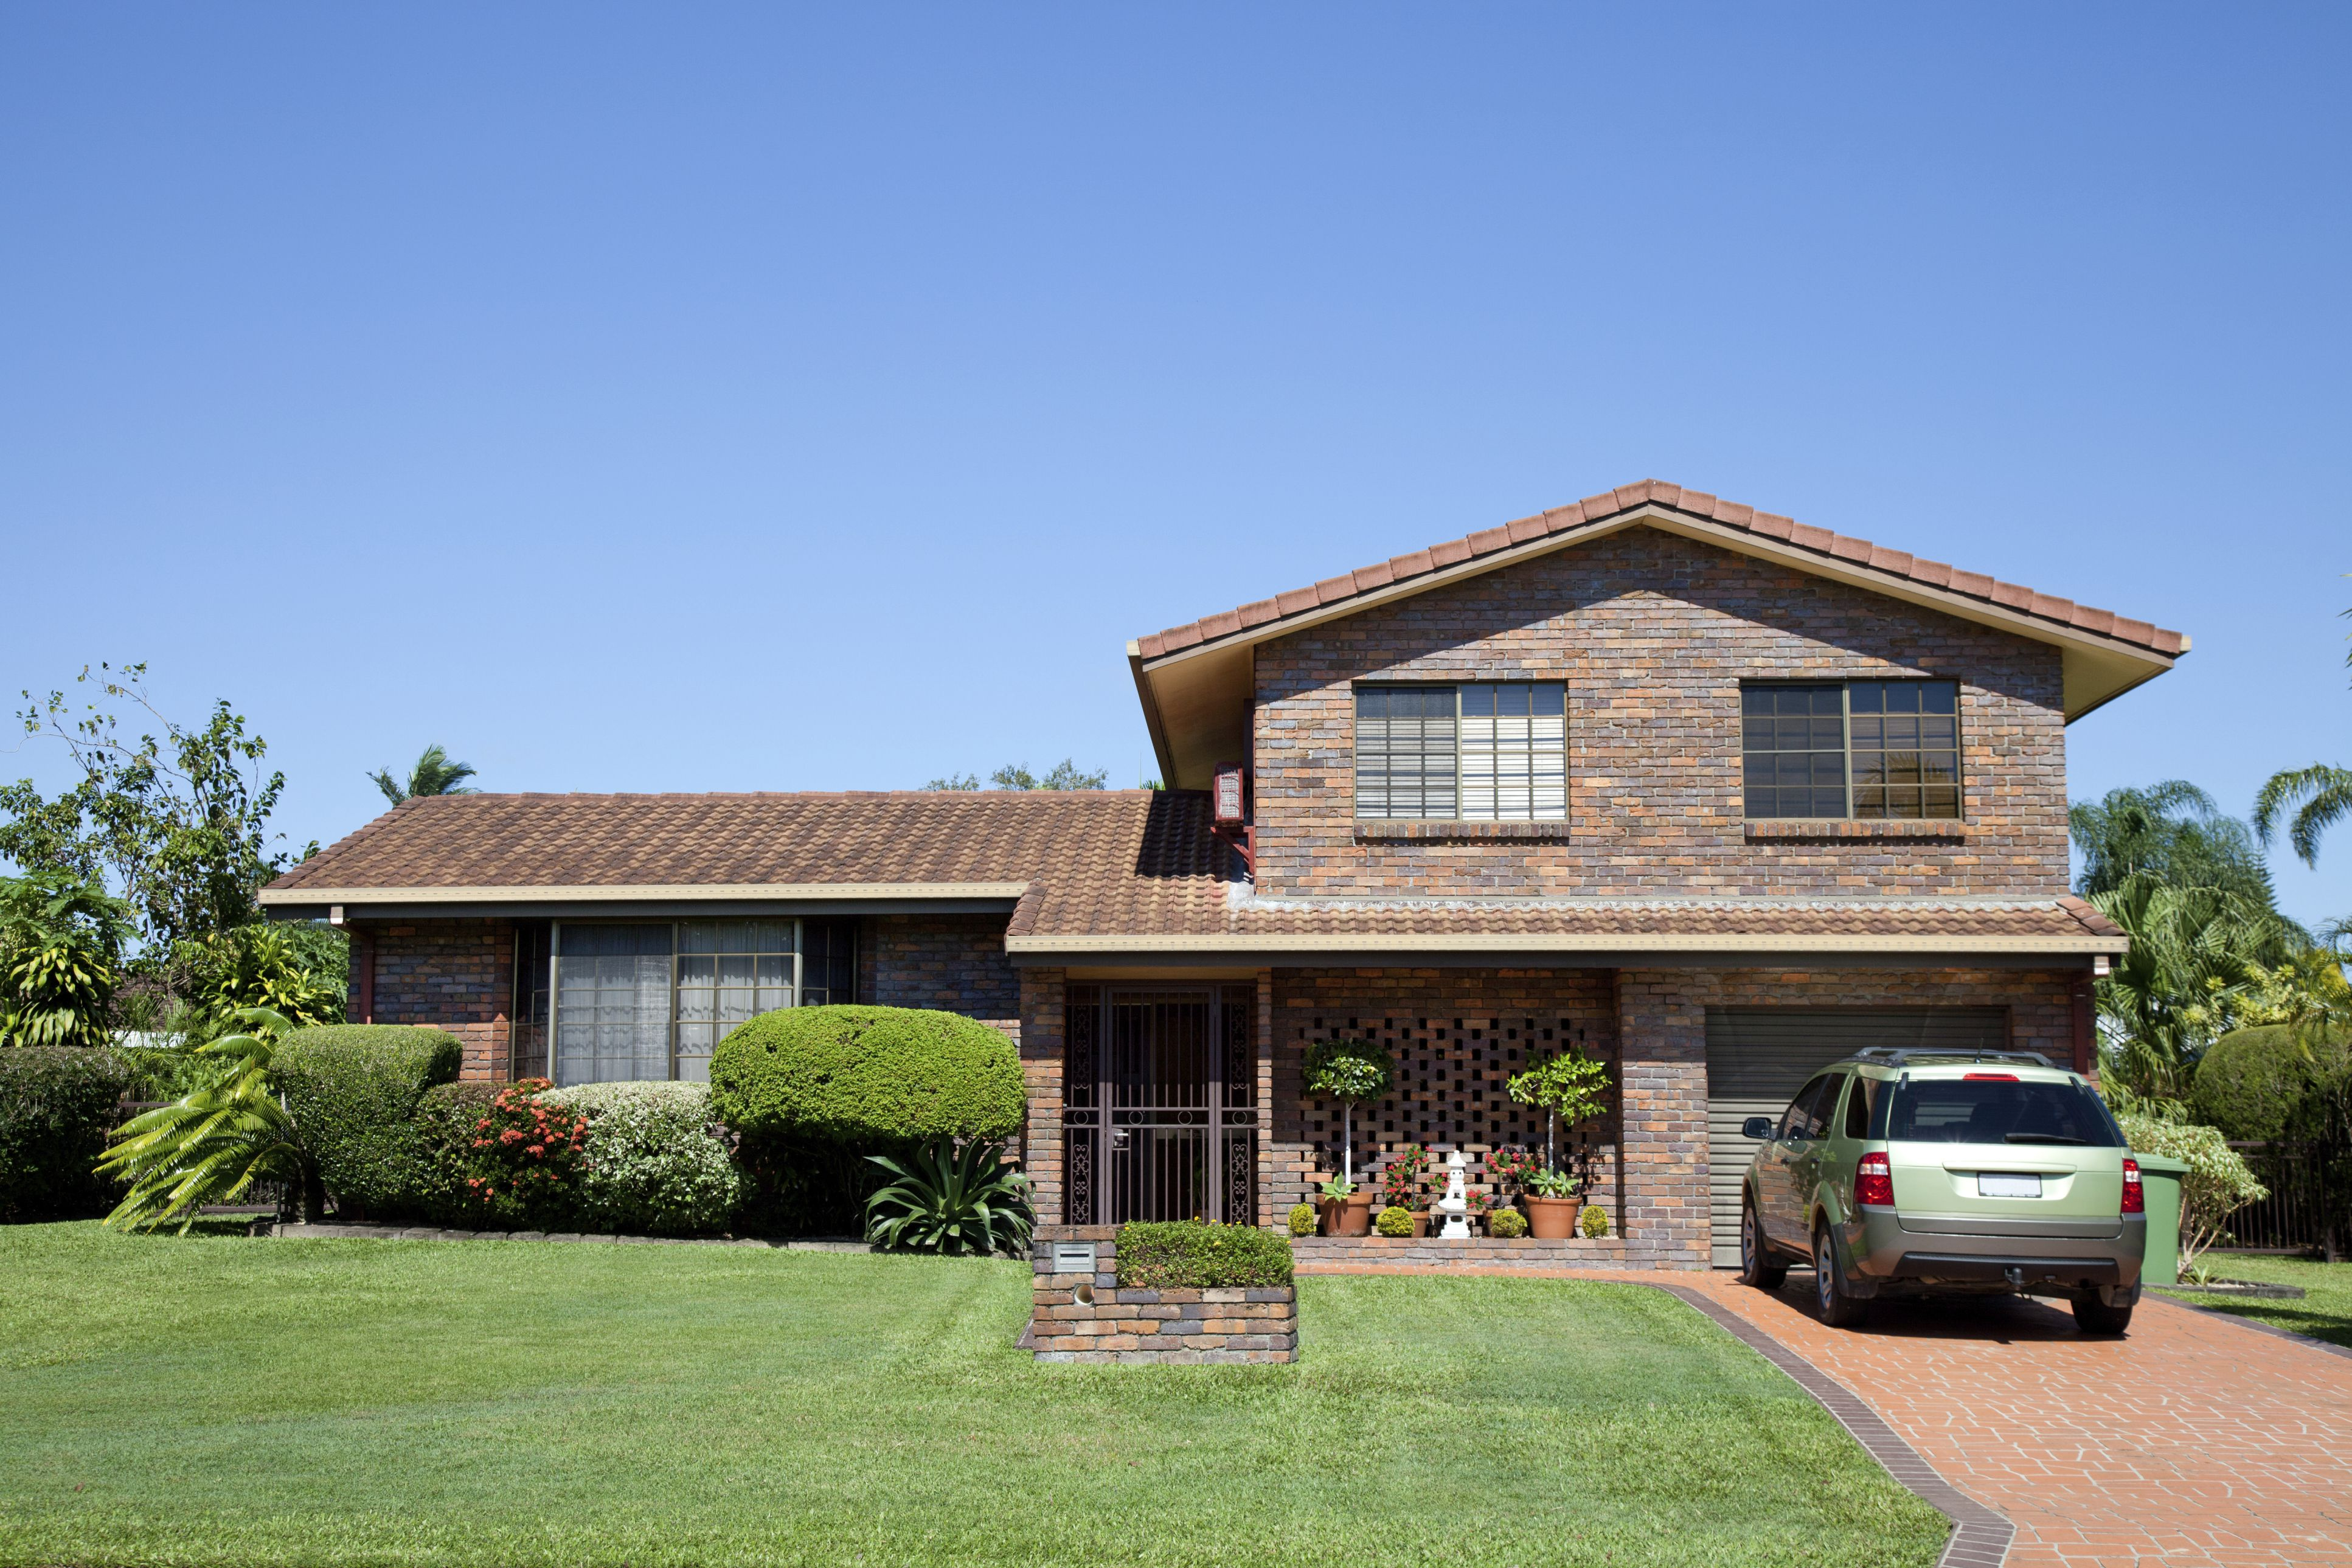 Front view of a tidy split level brown brick family home with green grass and blue sky and car in driveway.